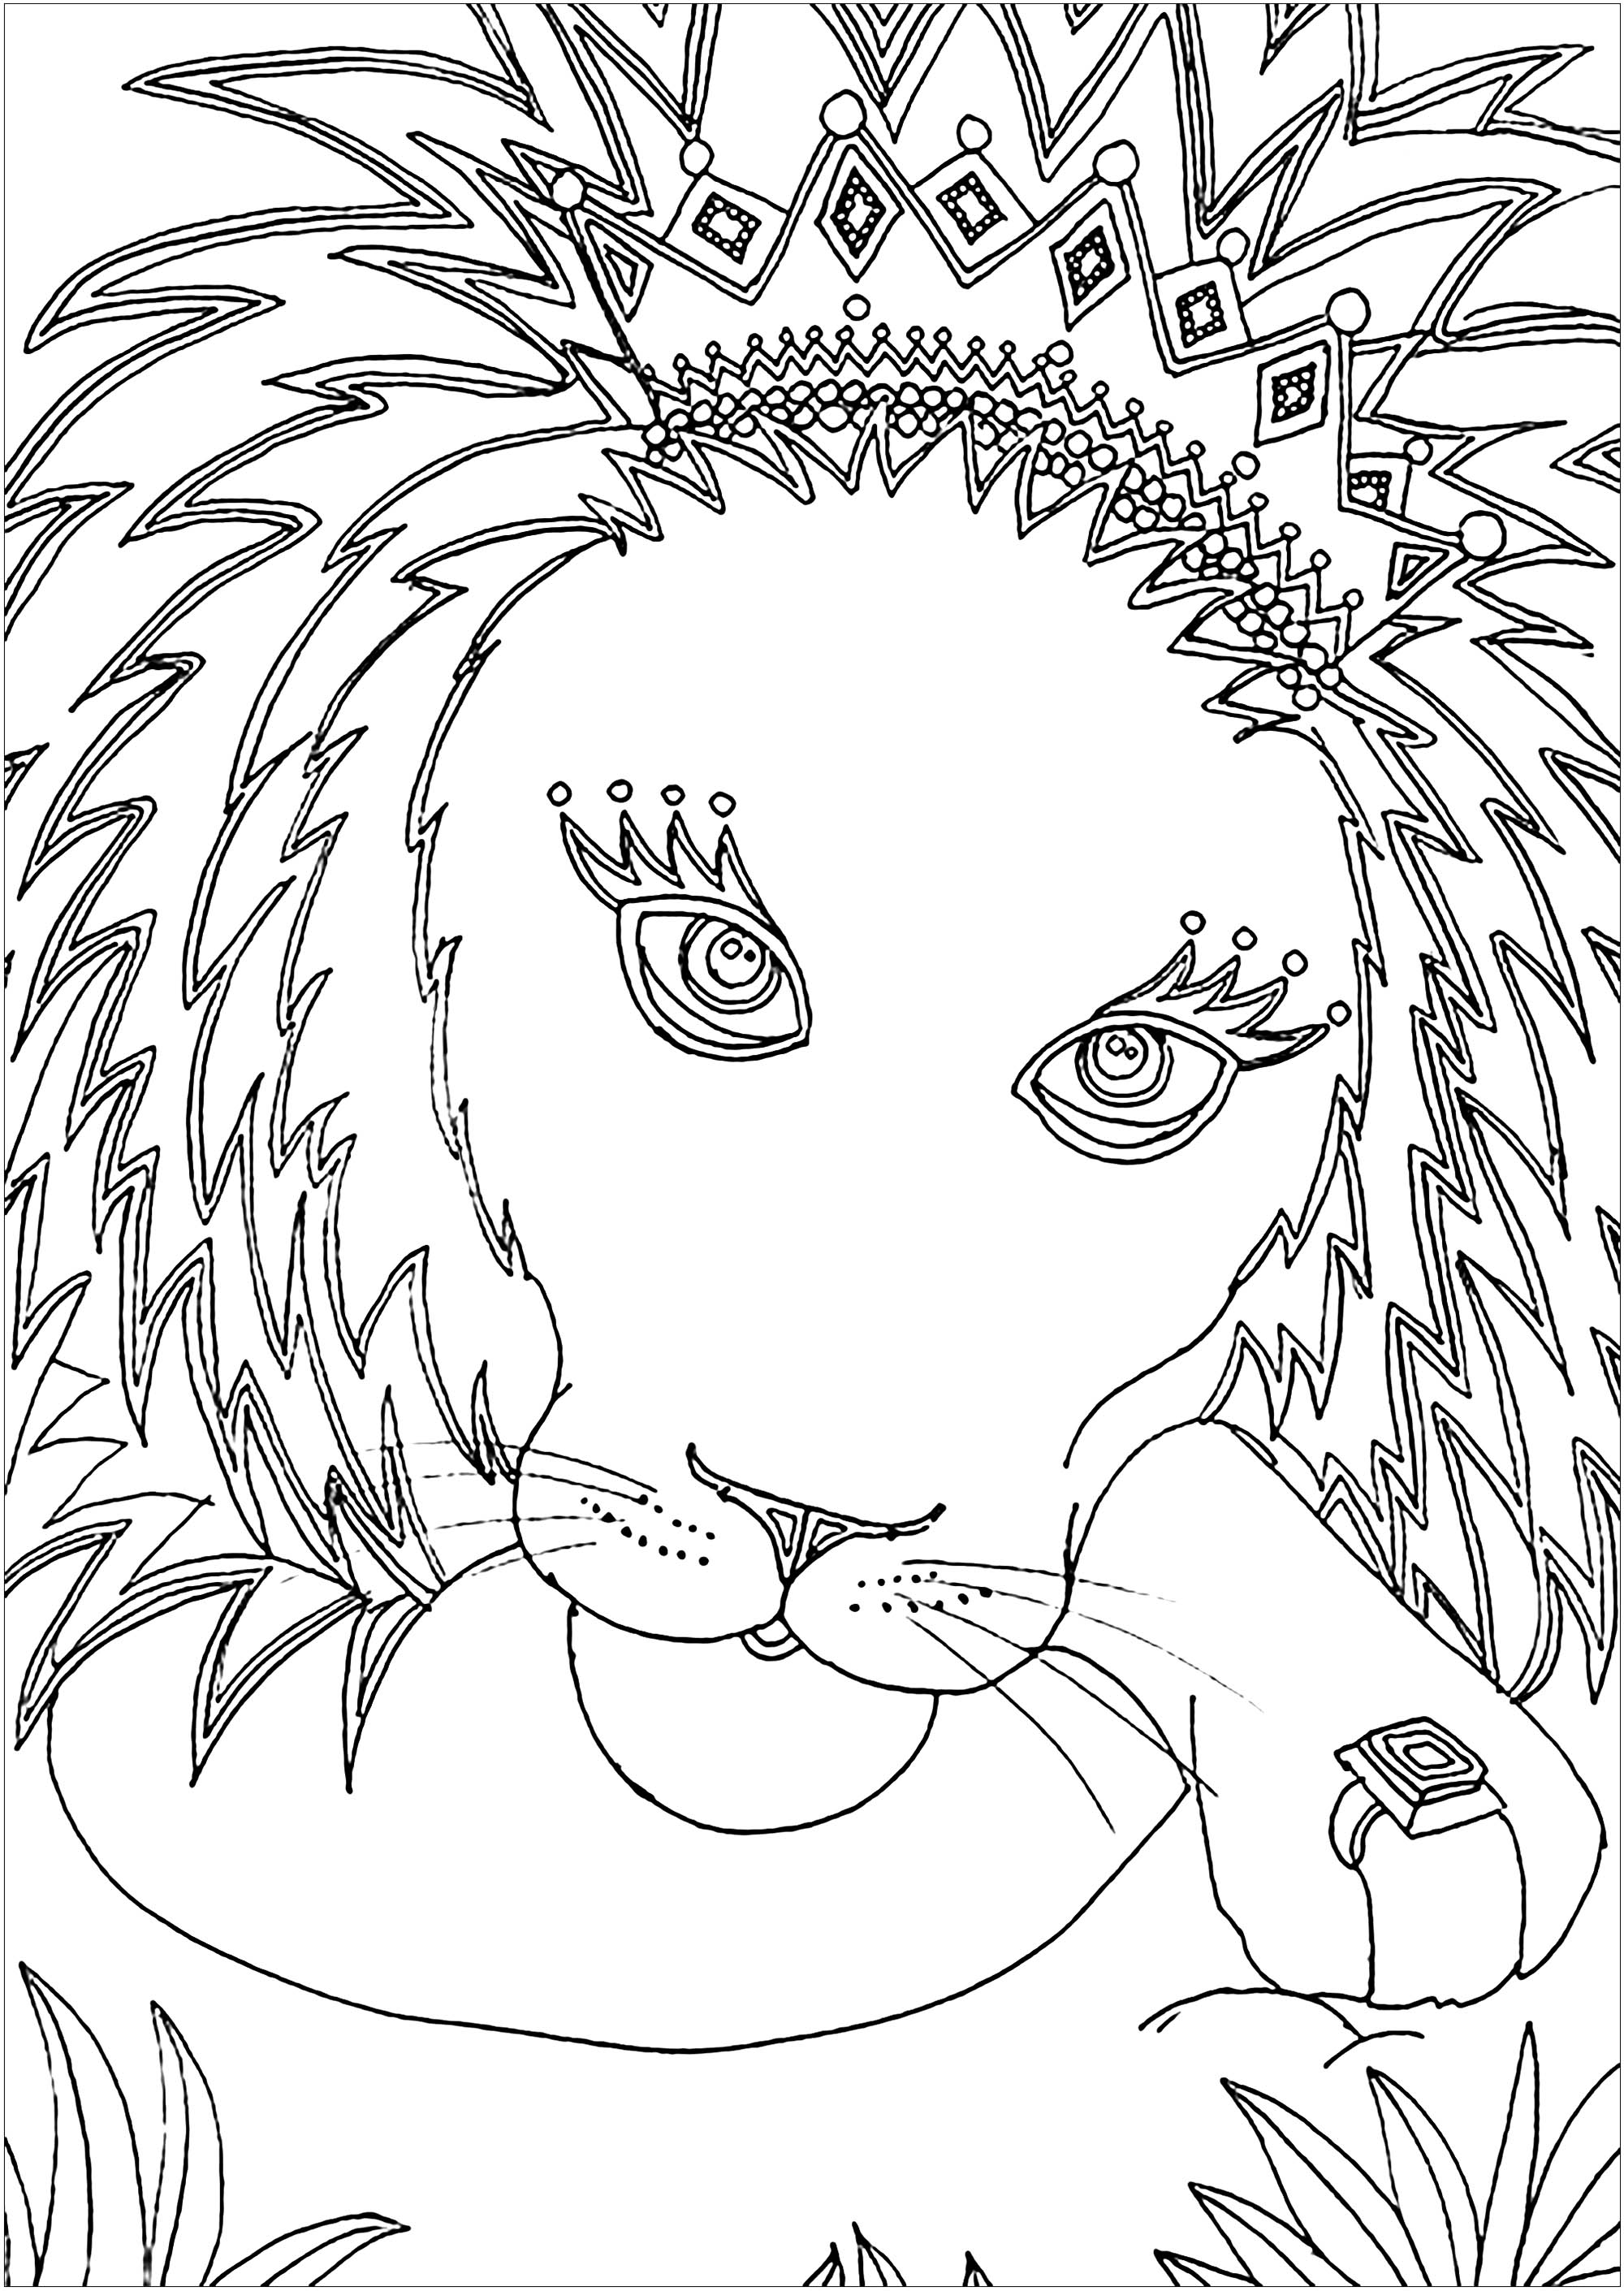 picture of a lion to color lion to color for children lion kids coloring pages picture lion to a color of